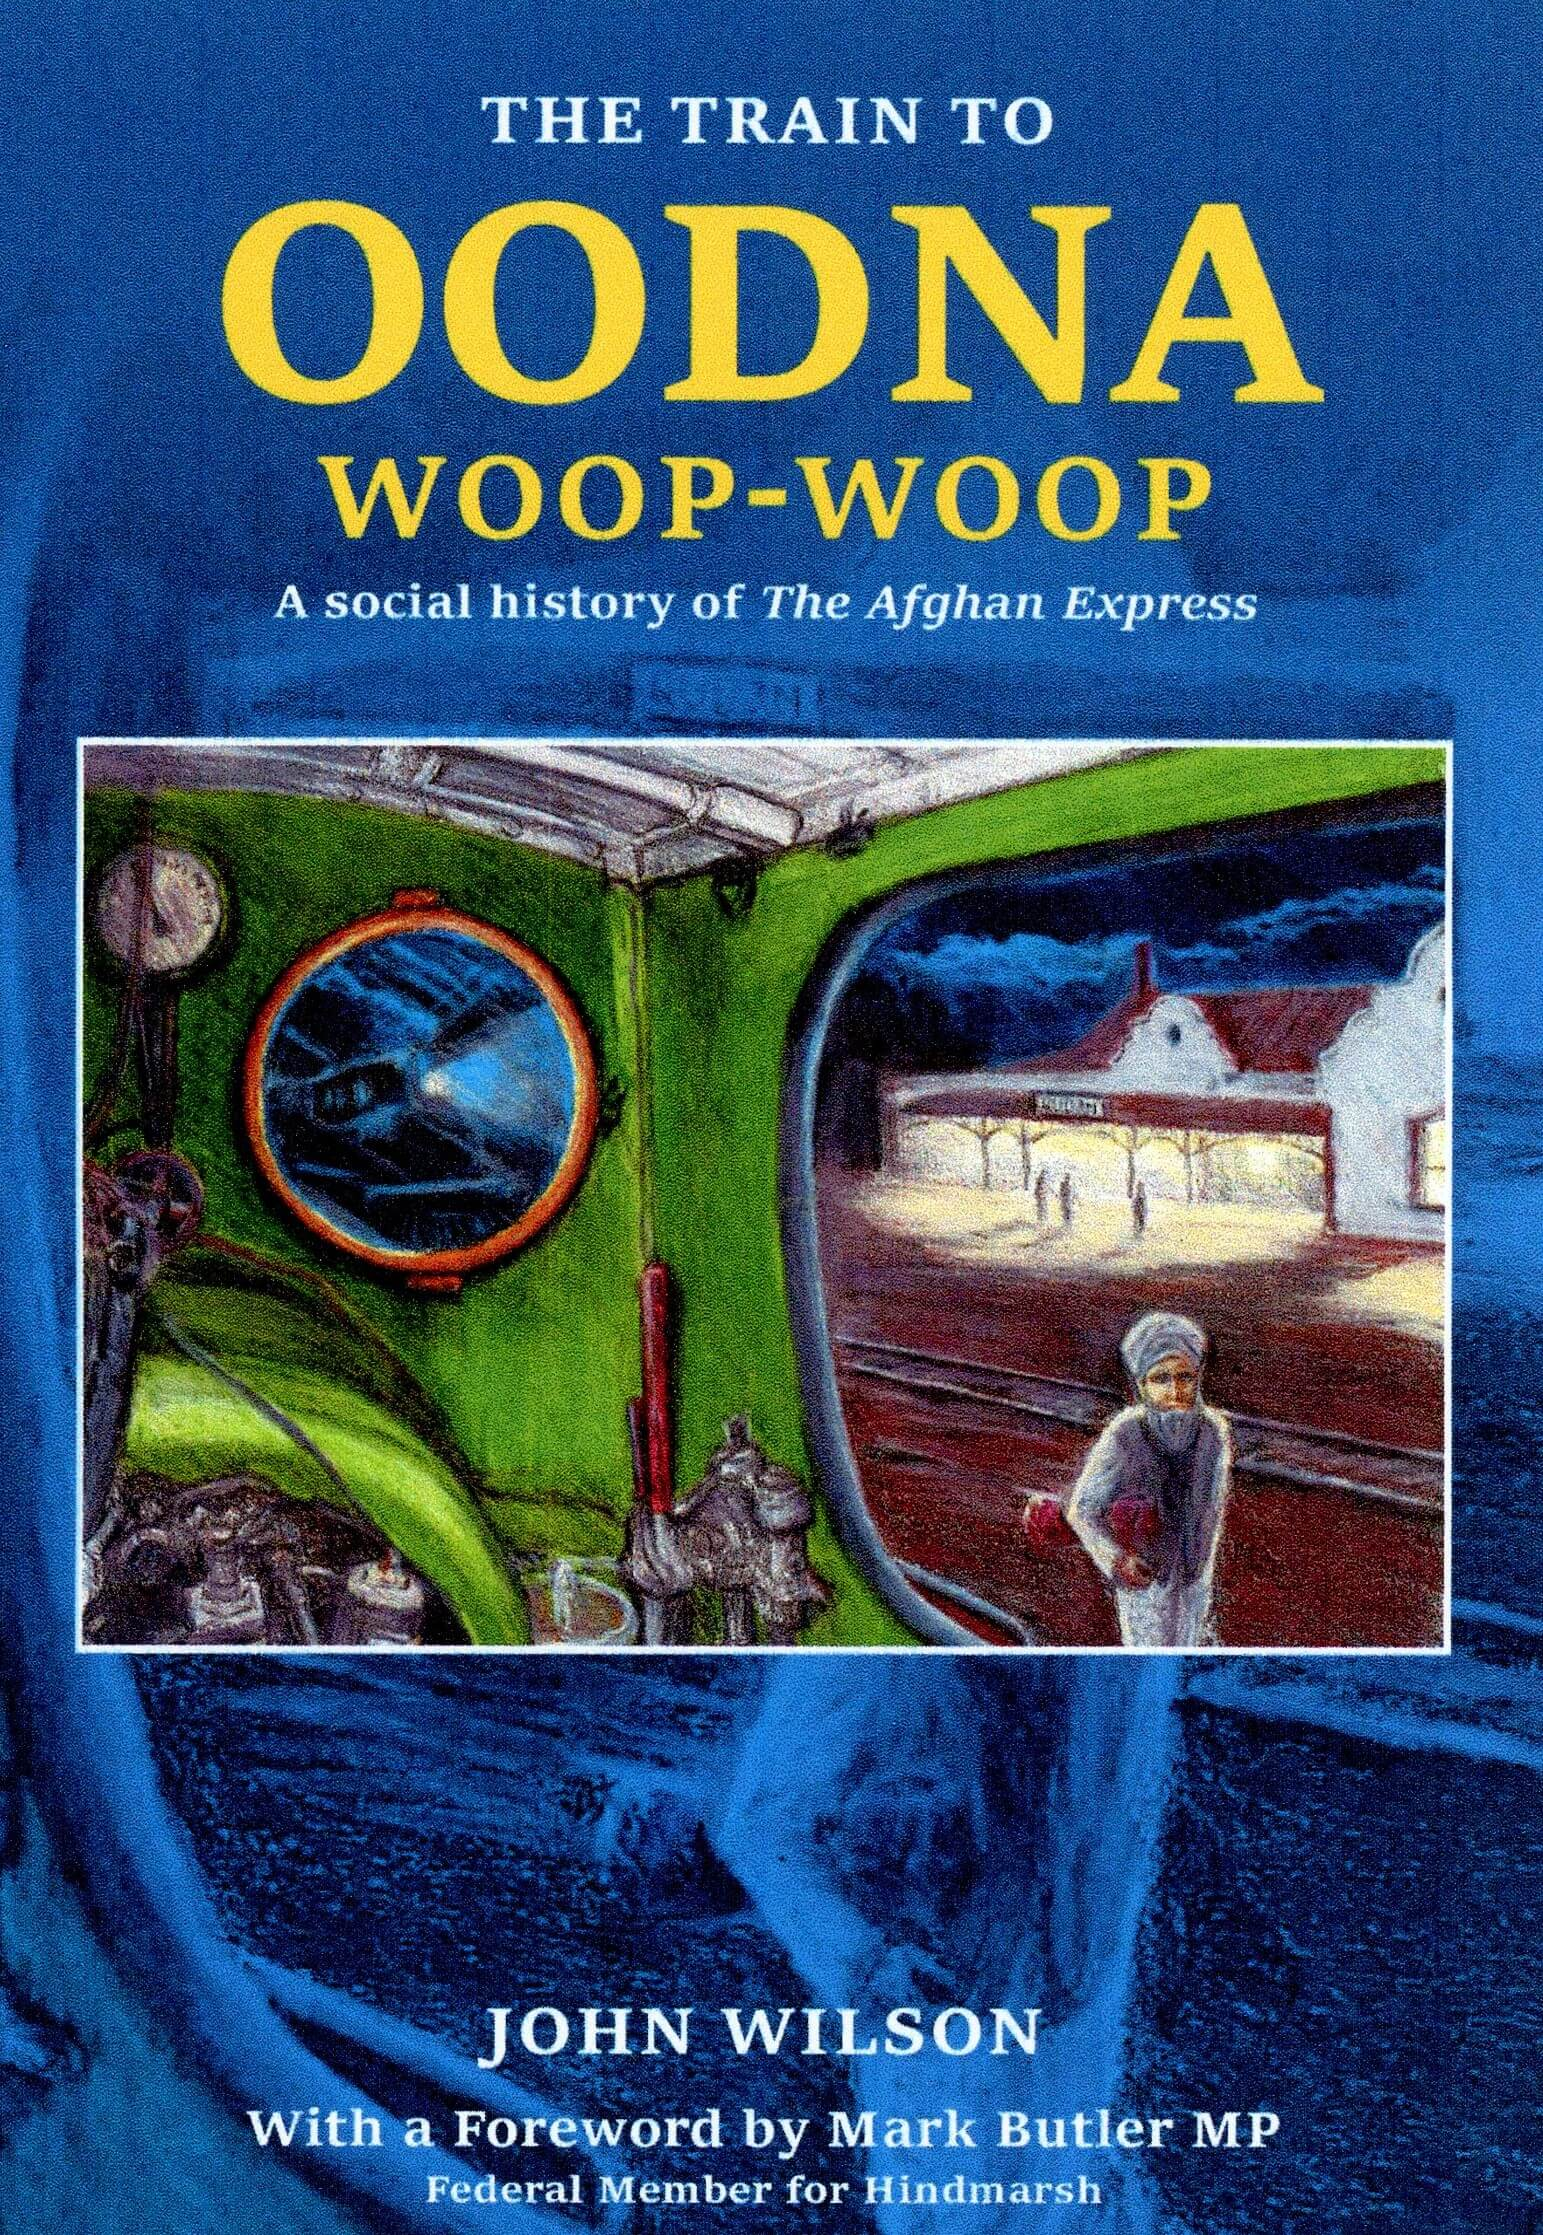 The Train to Oodna-woop-woop - The story of The Ghan